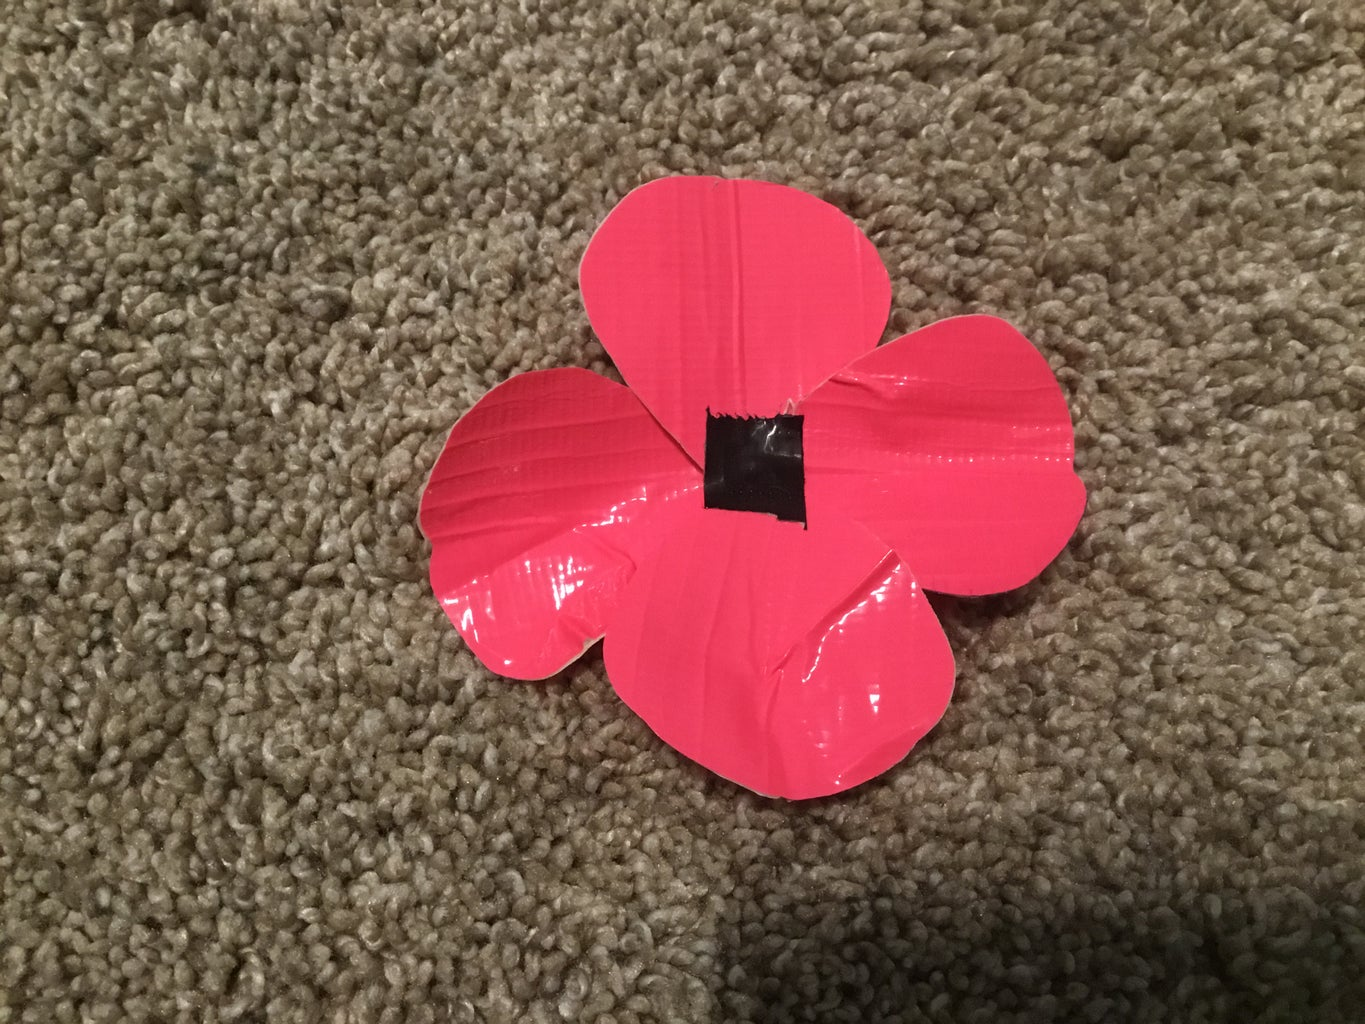 Putting the Petals Together